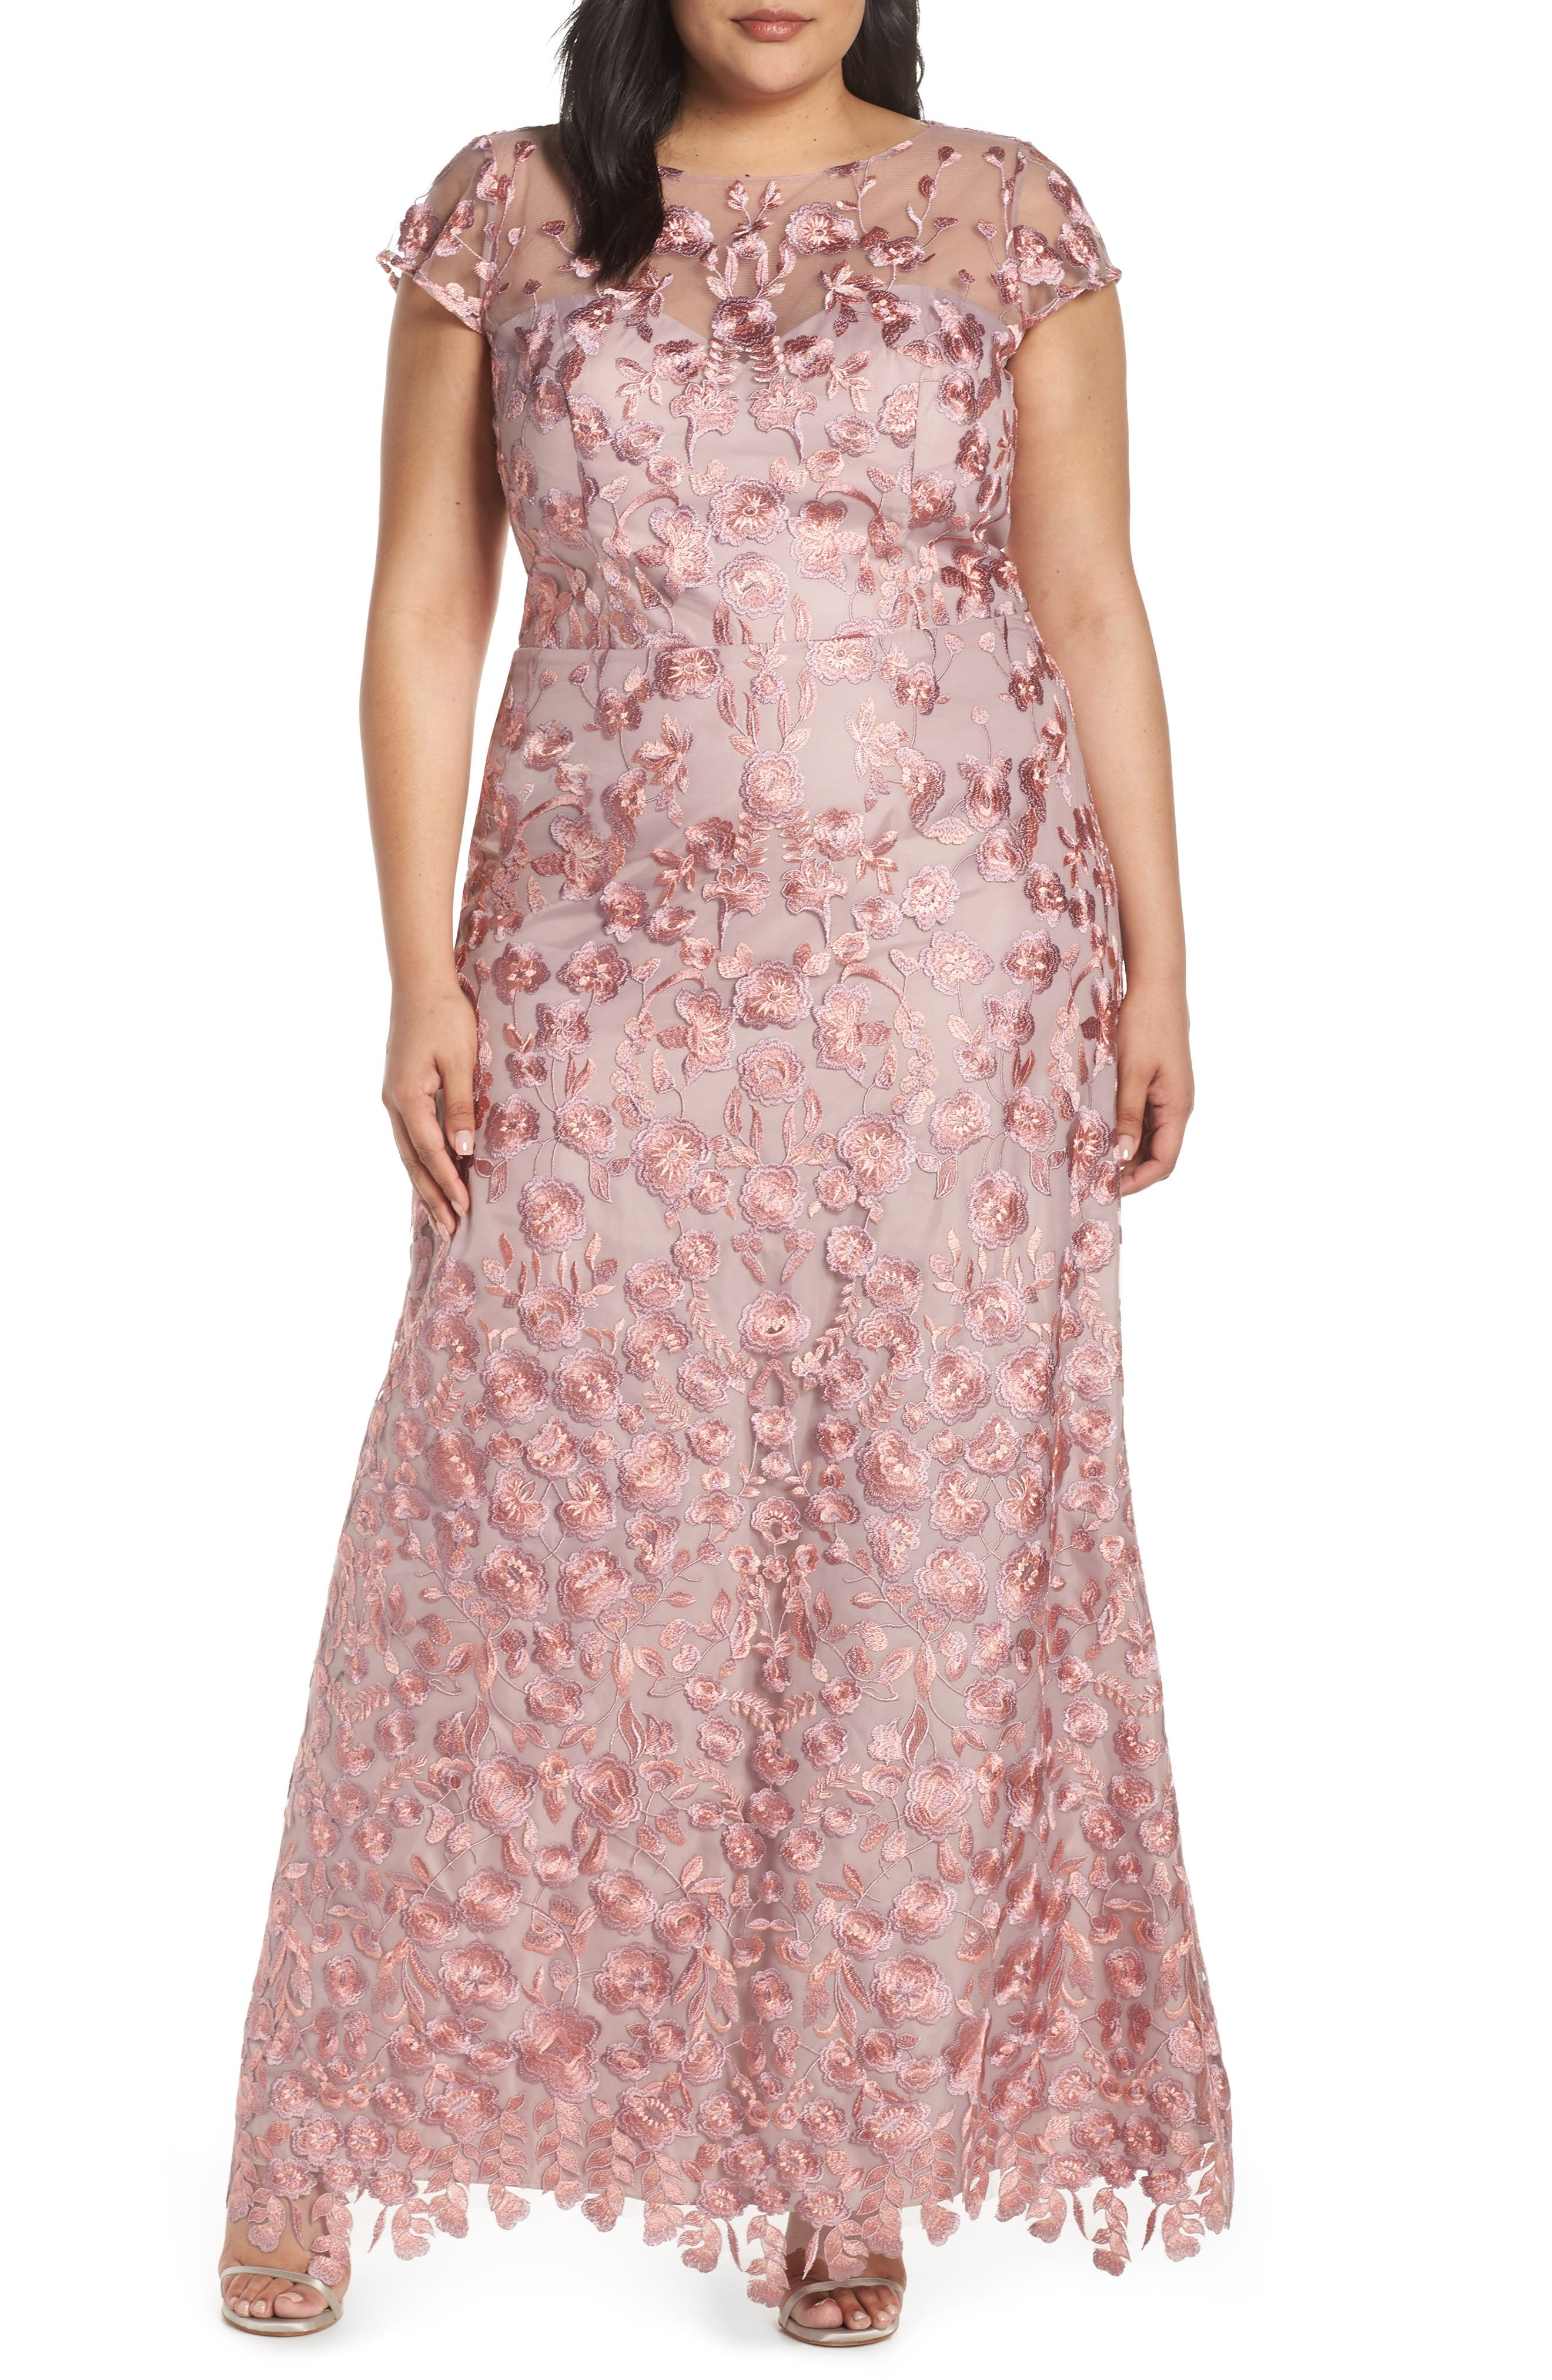 Plus Size Js Collections Floral Embroidered Evening Dress, Pink